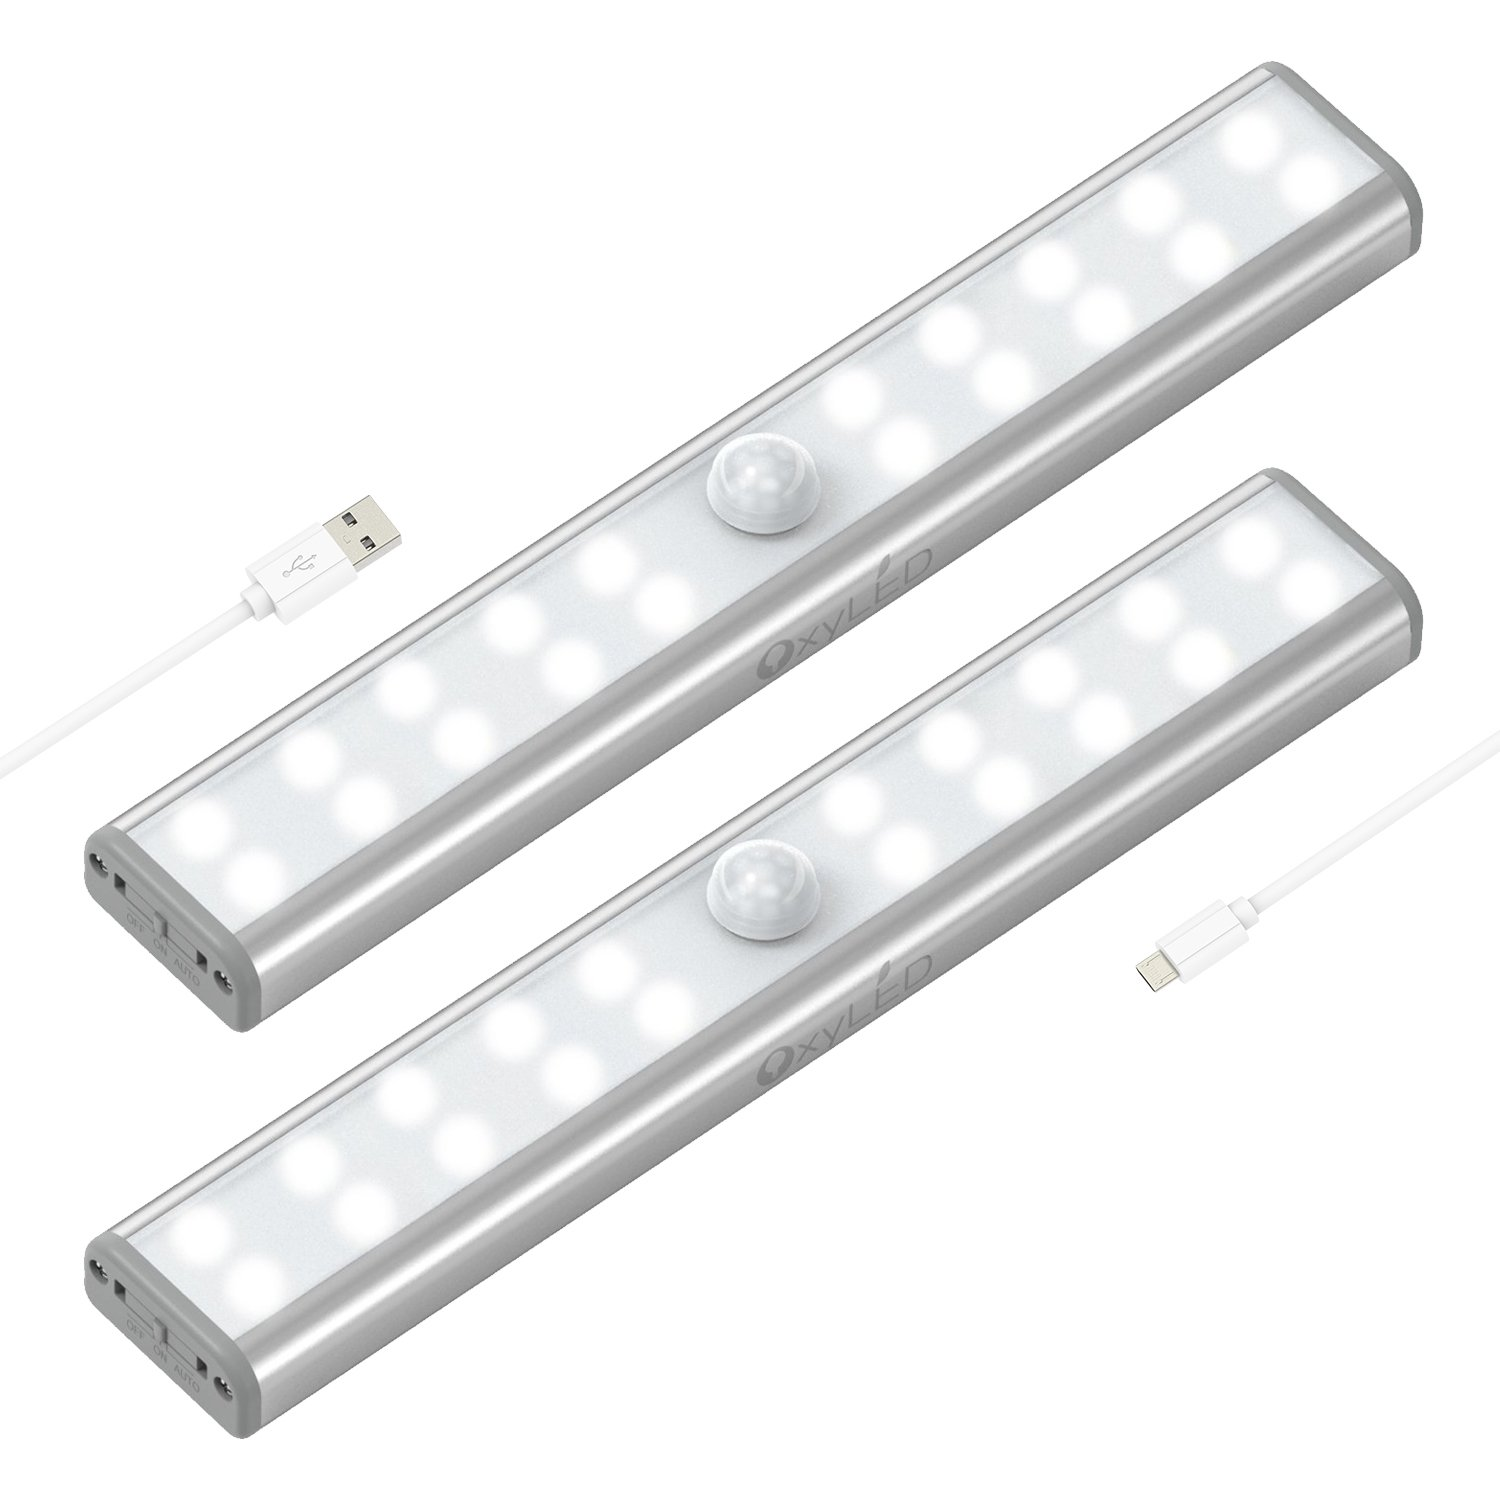 Wardrobe Light, OxyLED Motion Sensor Closet Lights, 20 LED Under-Cabinet Lightening, USB Rechargeable Stick-on Stairs Step Light Bar, LED Night Light, Safe Light with Magnetic Strip, 2-pack, T-02U